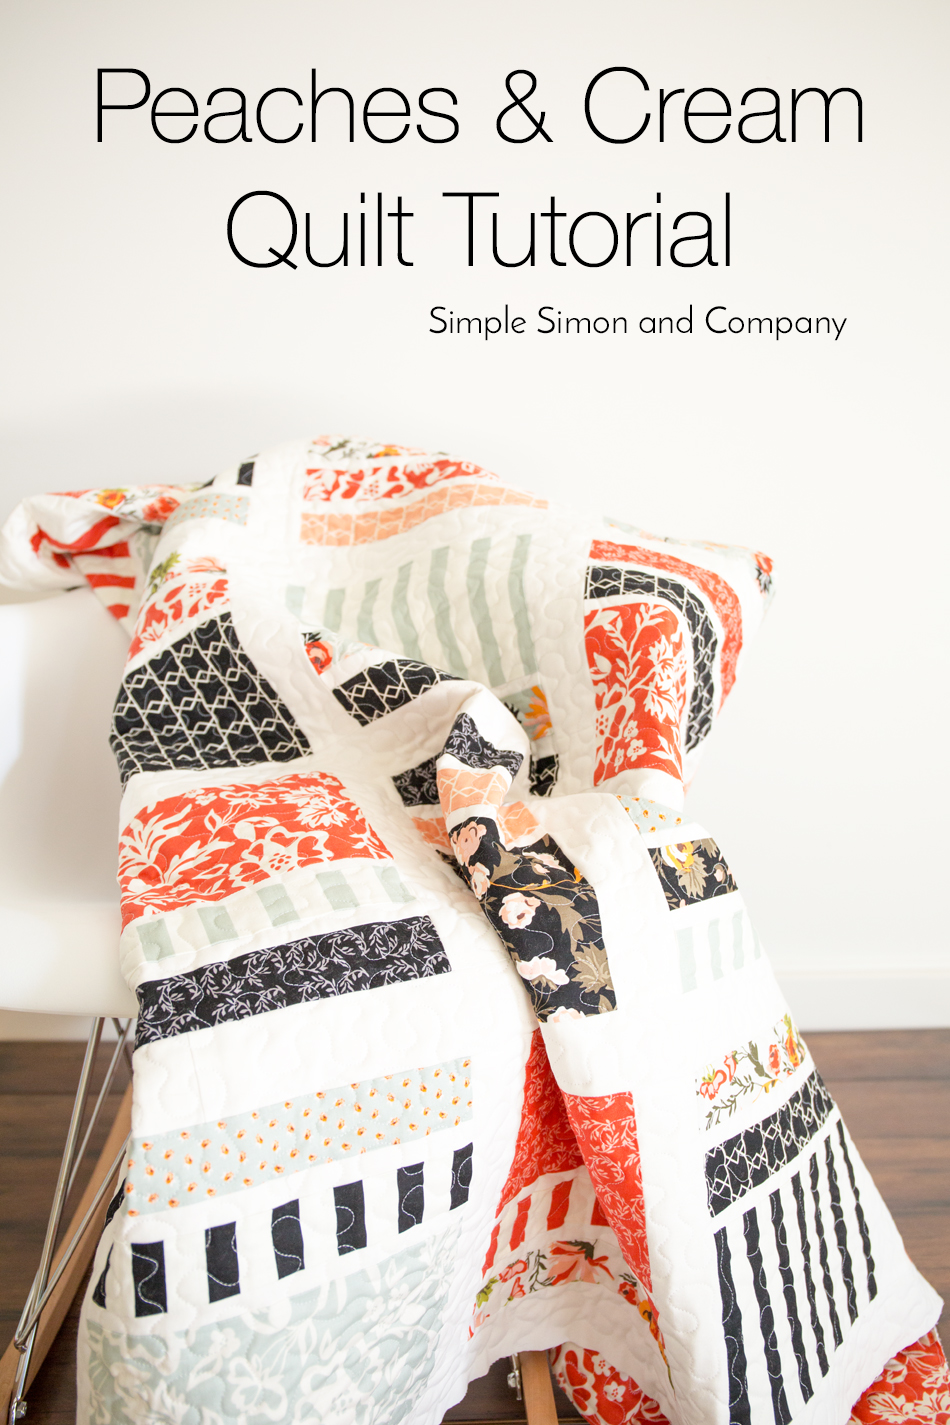 Peaches and Cream Quilt Tutorial